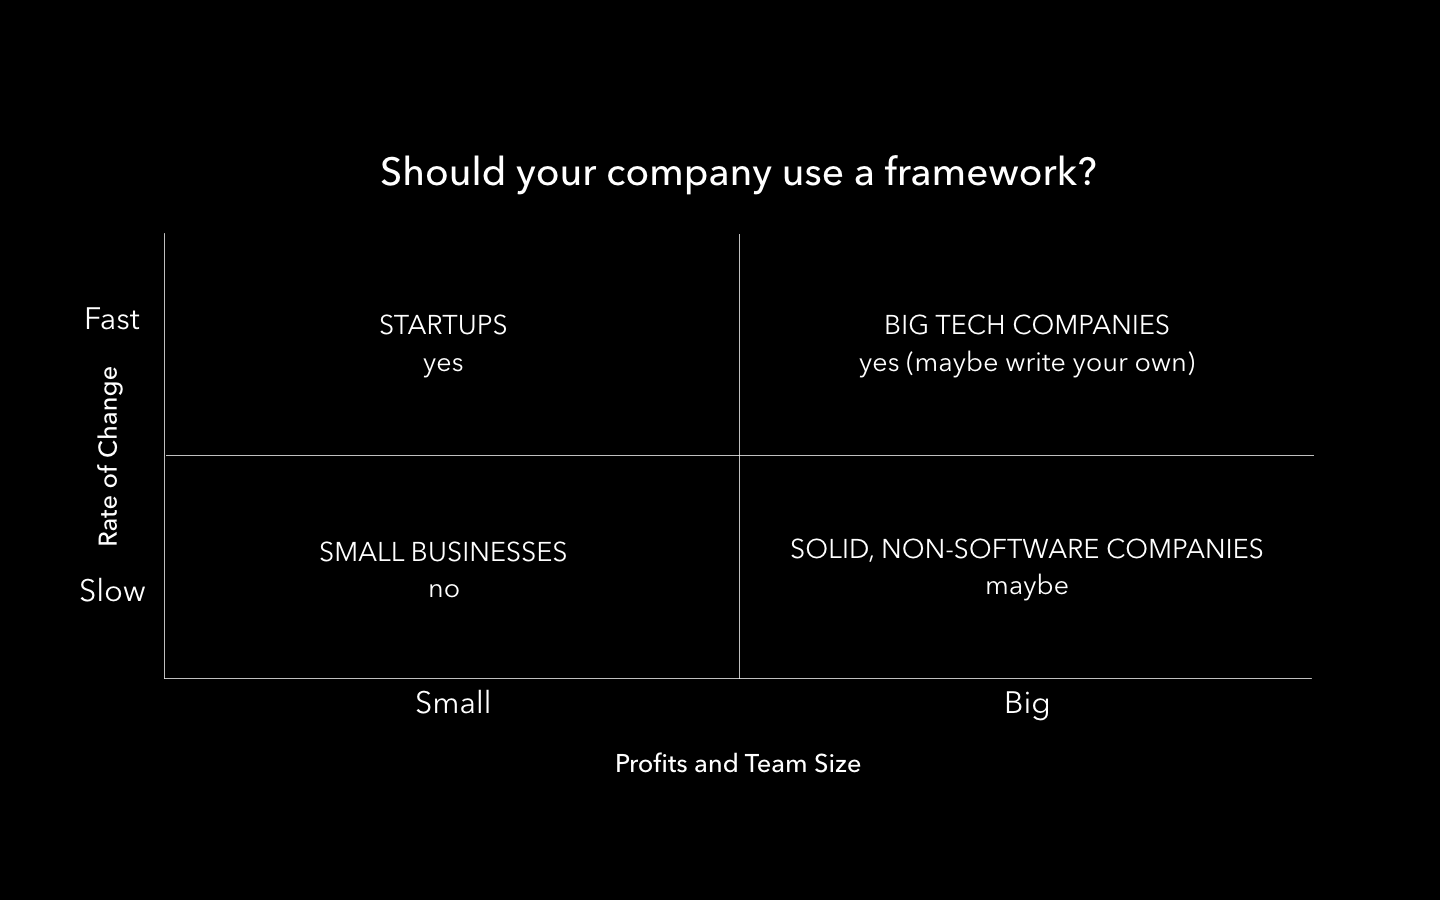 Should You Use a Framework